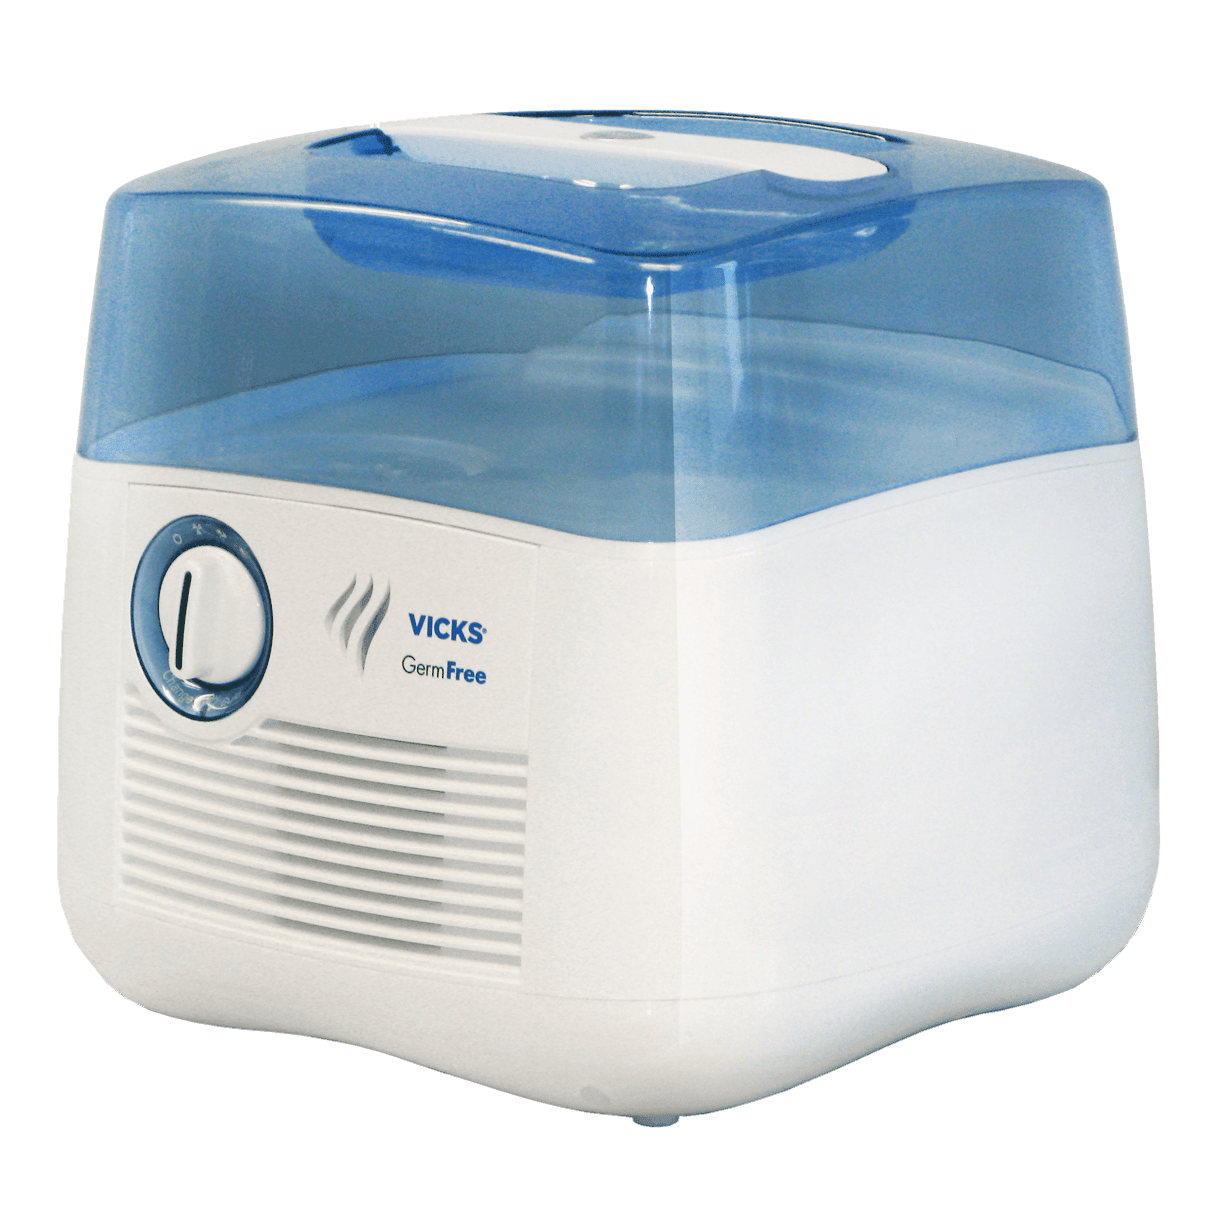 VICKS® GERMFREE COOL & PURE AIR HUMIDIFIER (VH3900E)